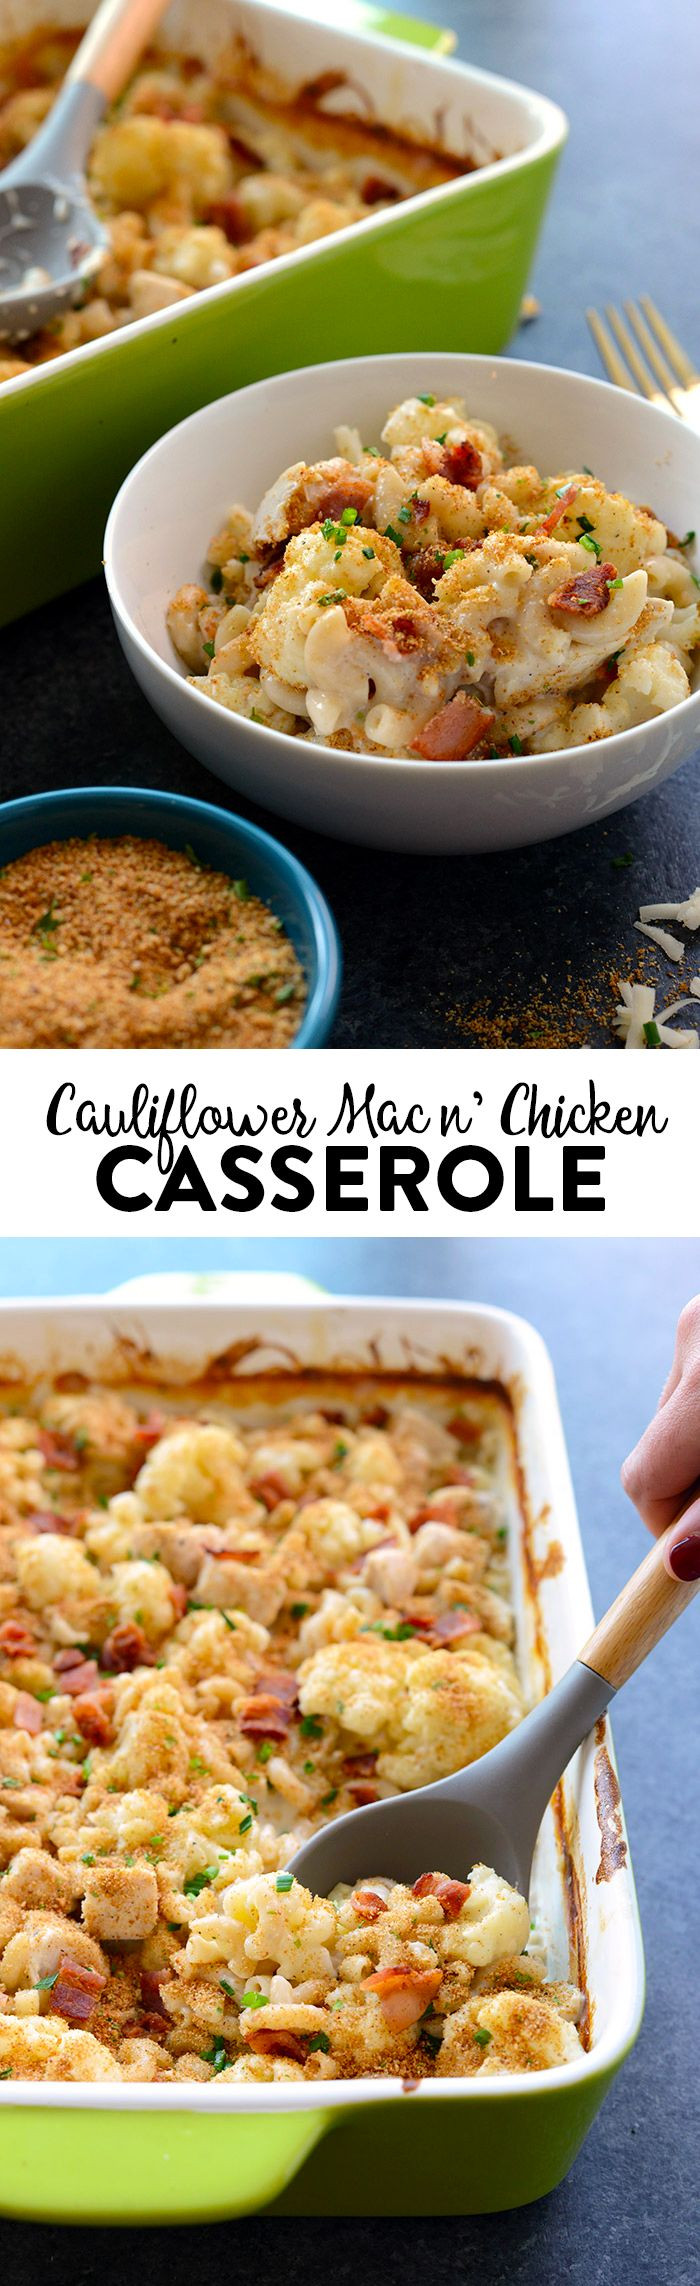 Heart Healthy Chicken Casserole  1000 images about Daycare Recipes and Crafts on Pinterest